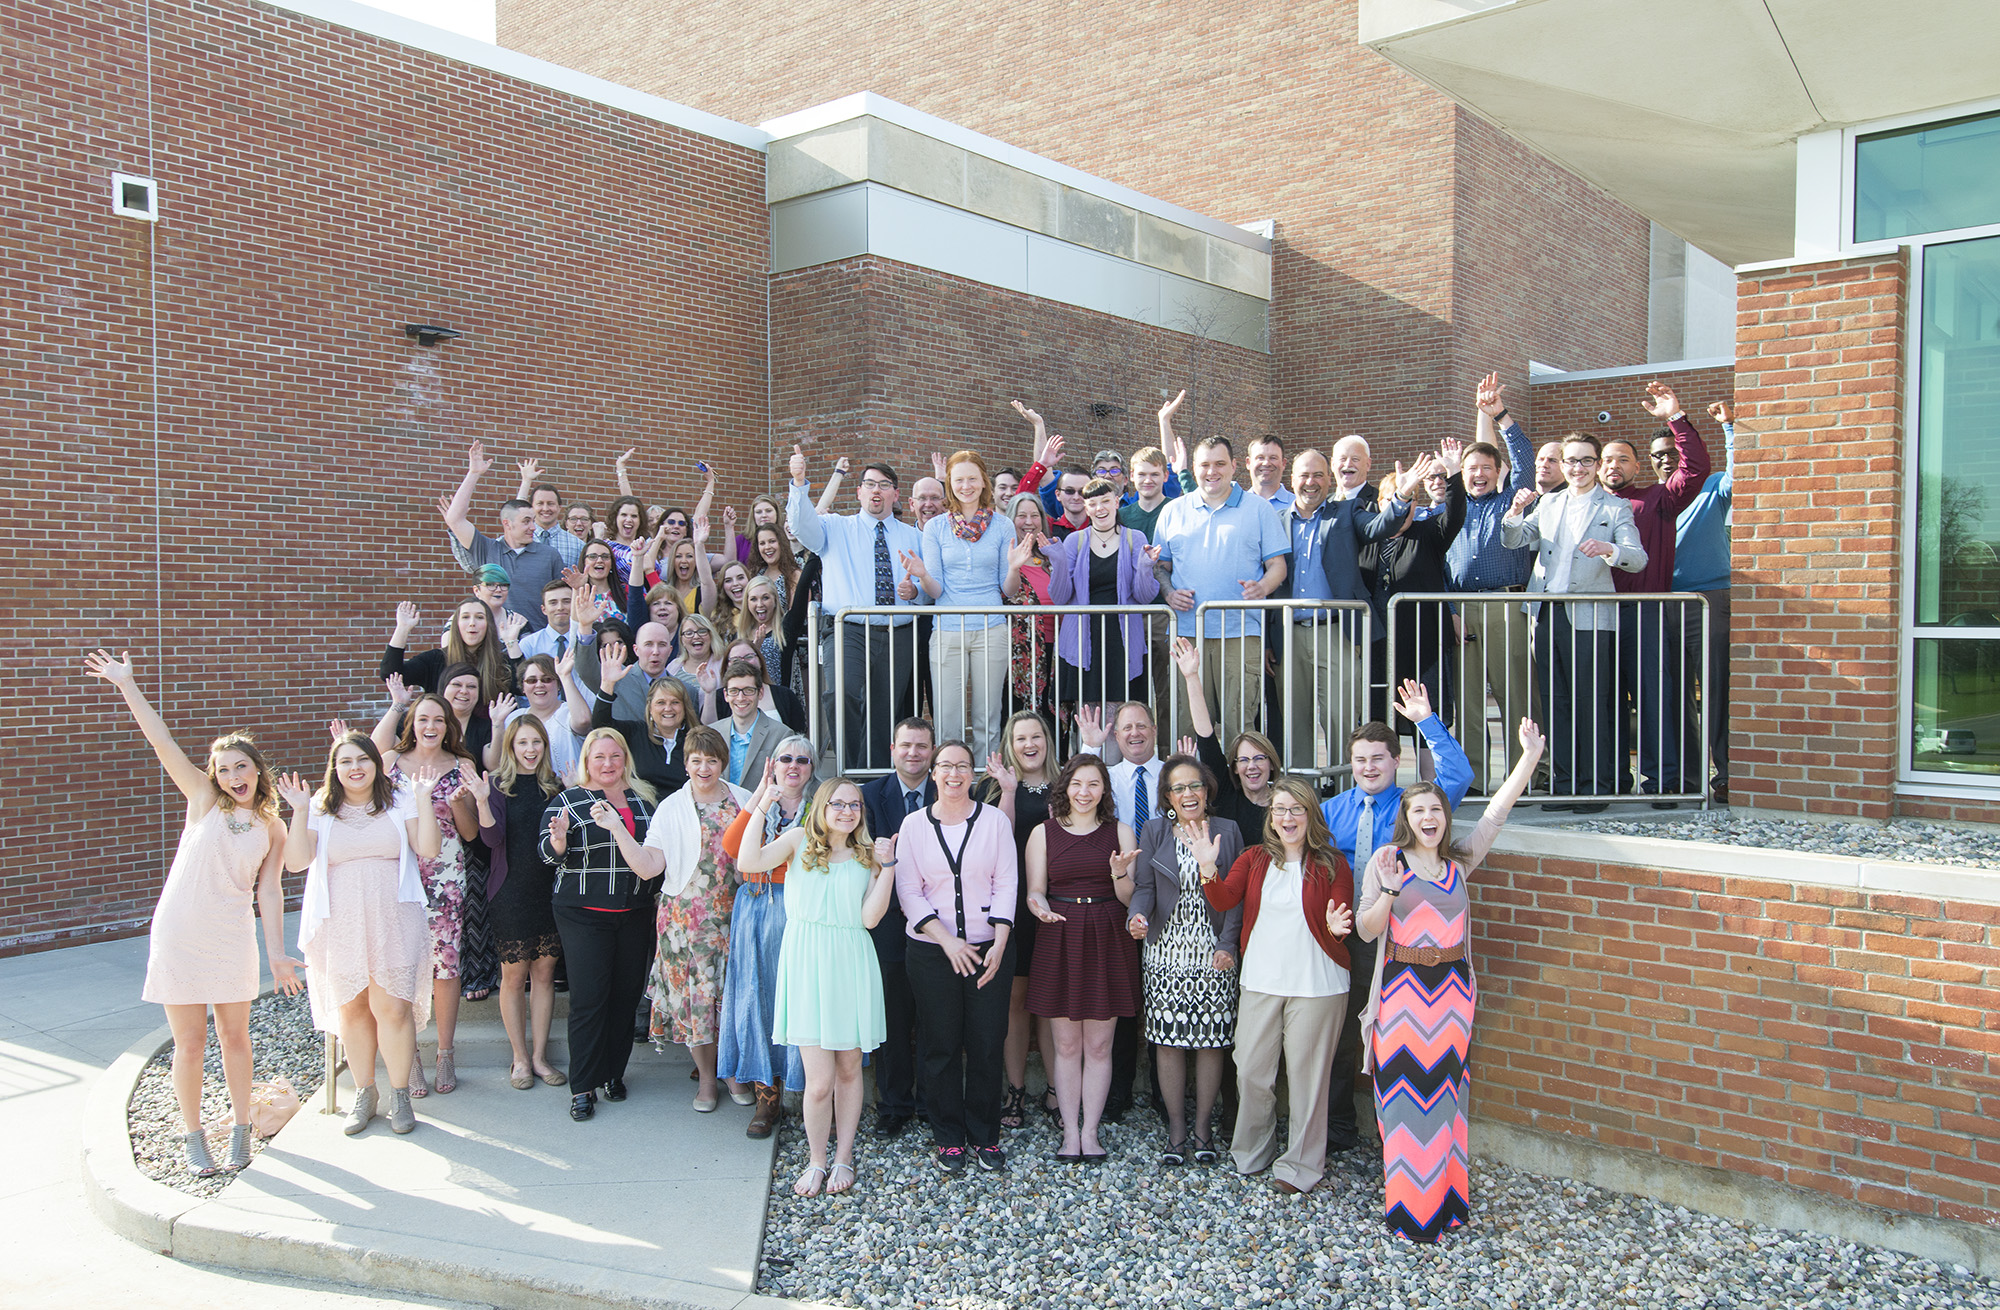 Student Outstanding Bruin Award recipients and staff presenters pose for a group photo outside the Kellogg Room on KCC's North Avenue campus in Battle Creek.